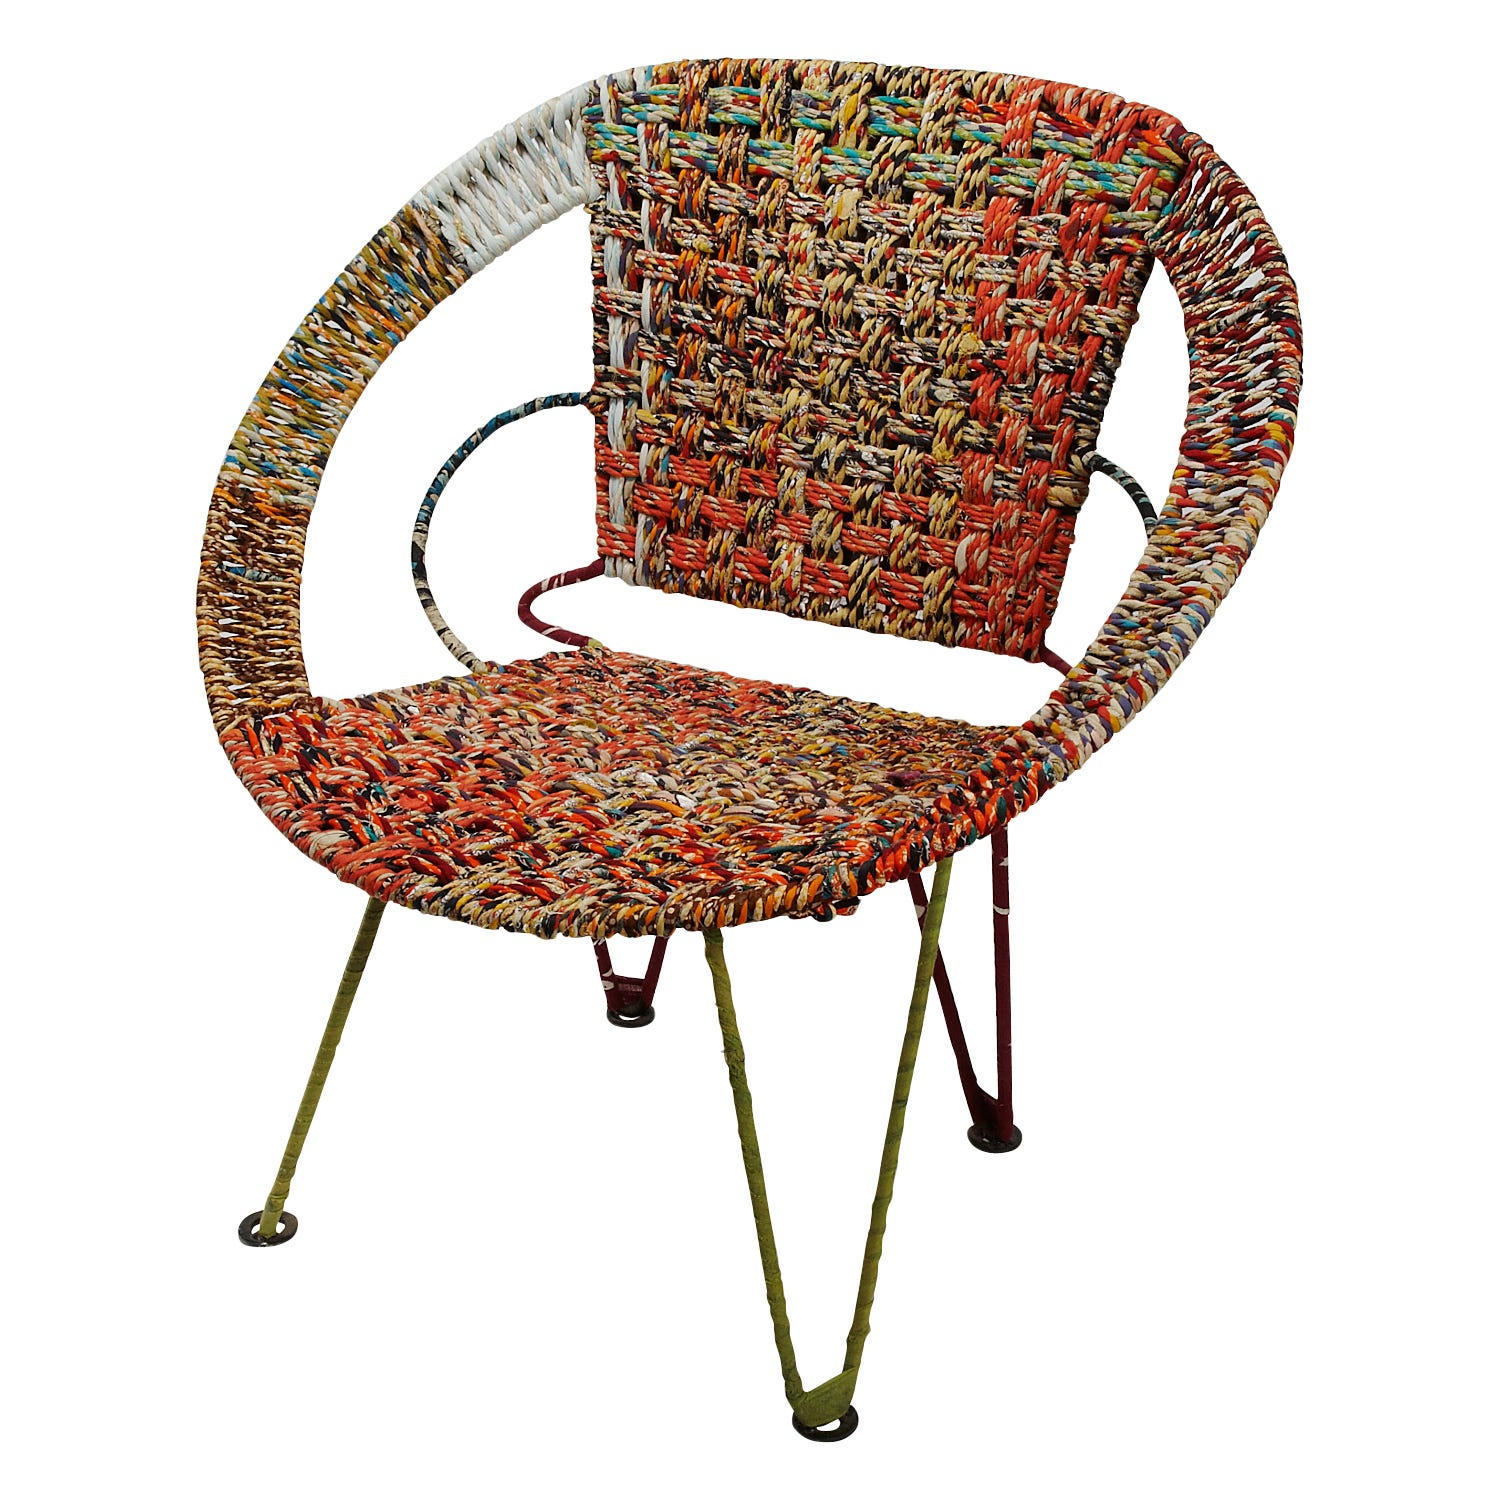 Ten Thousand Villages Mid Century Sari Chair - fair trade furniture